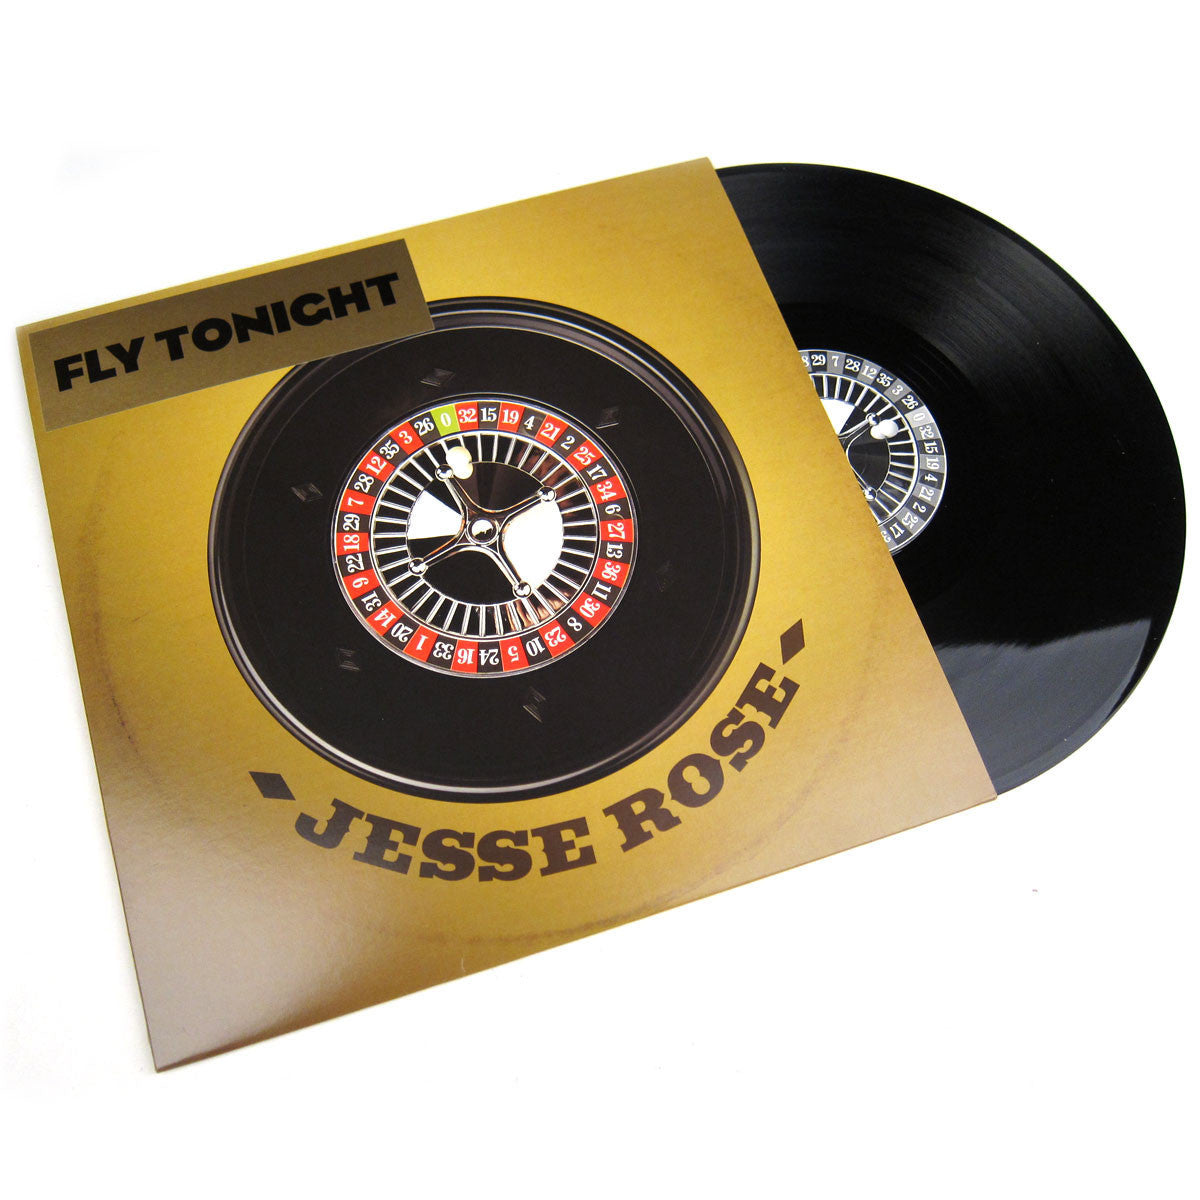 Jesse Rose: Fly Tonight Vinyl 12""